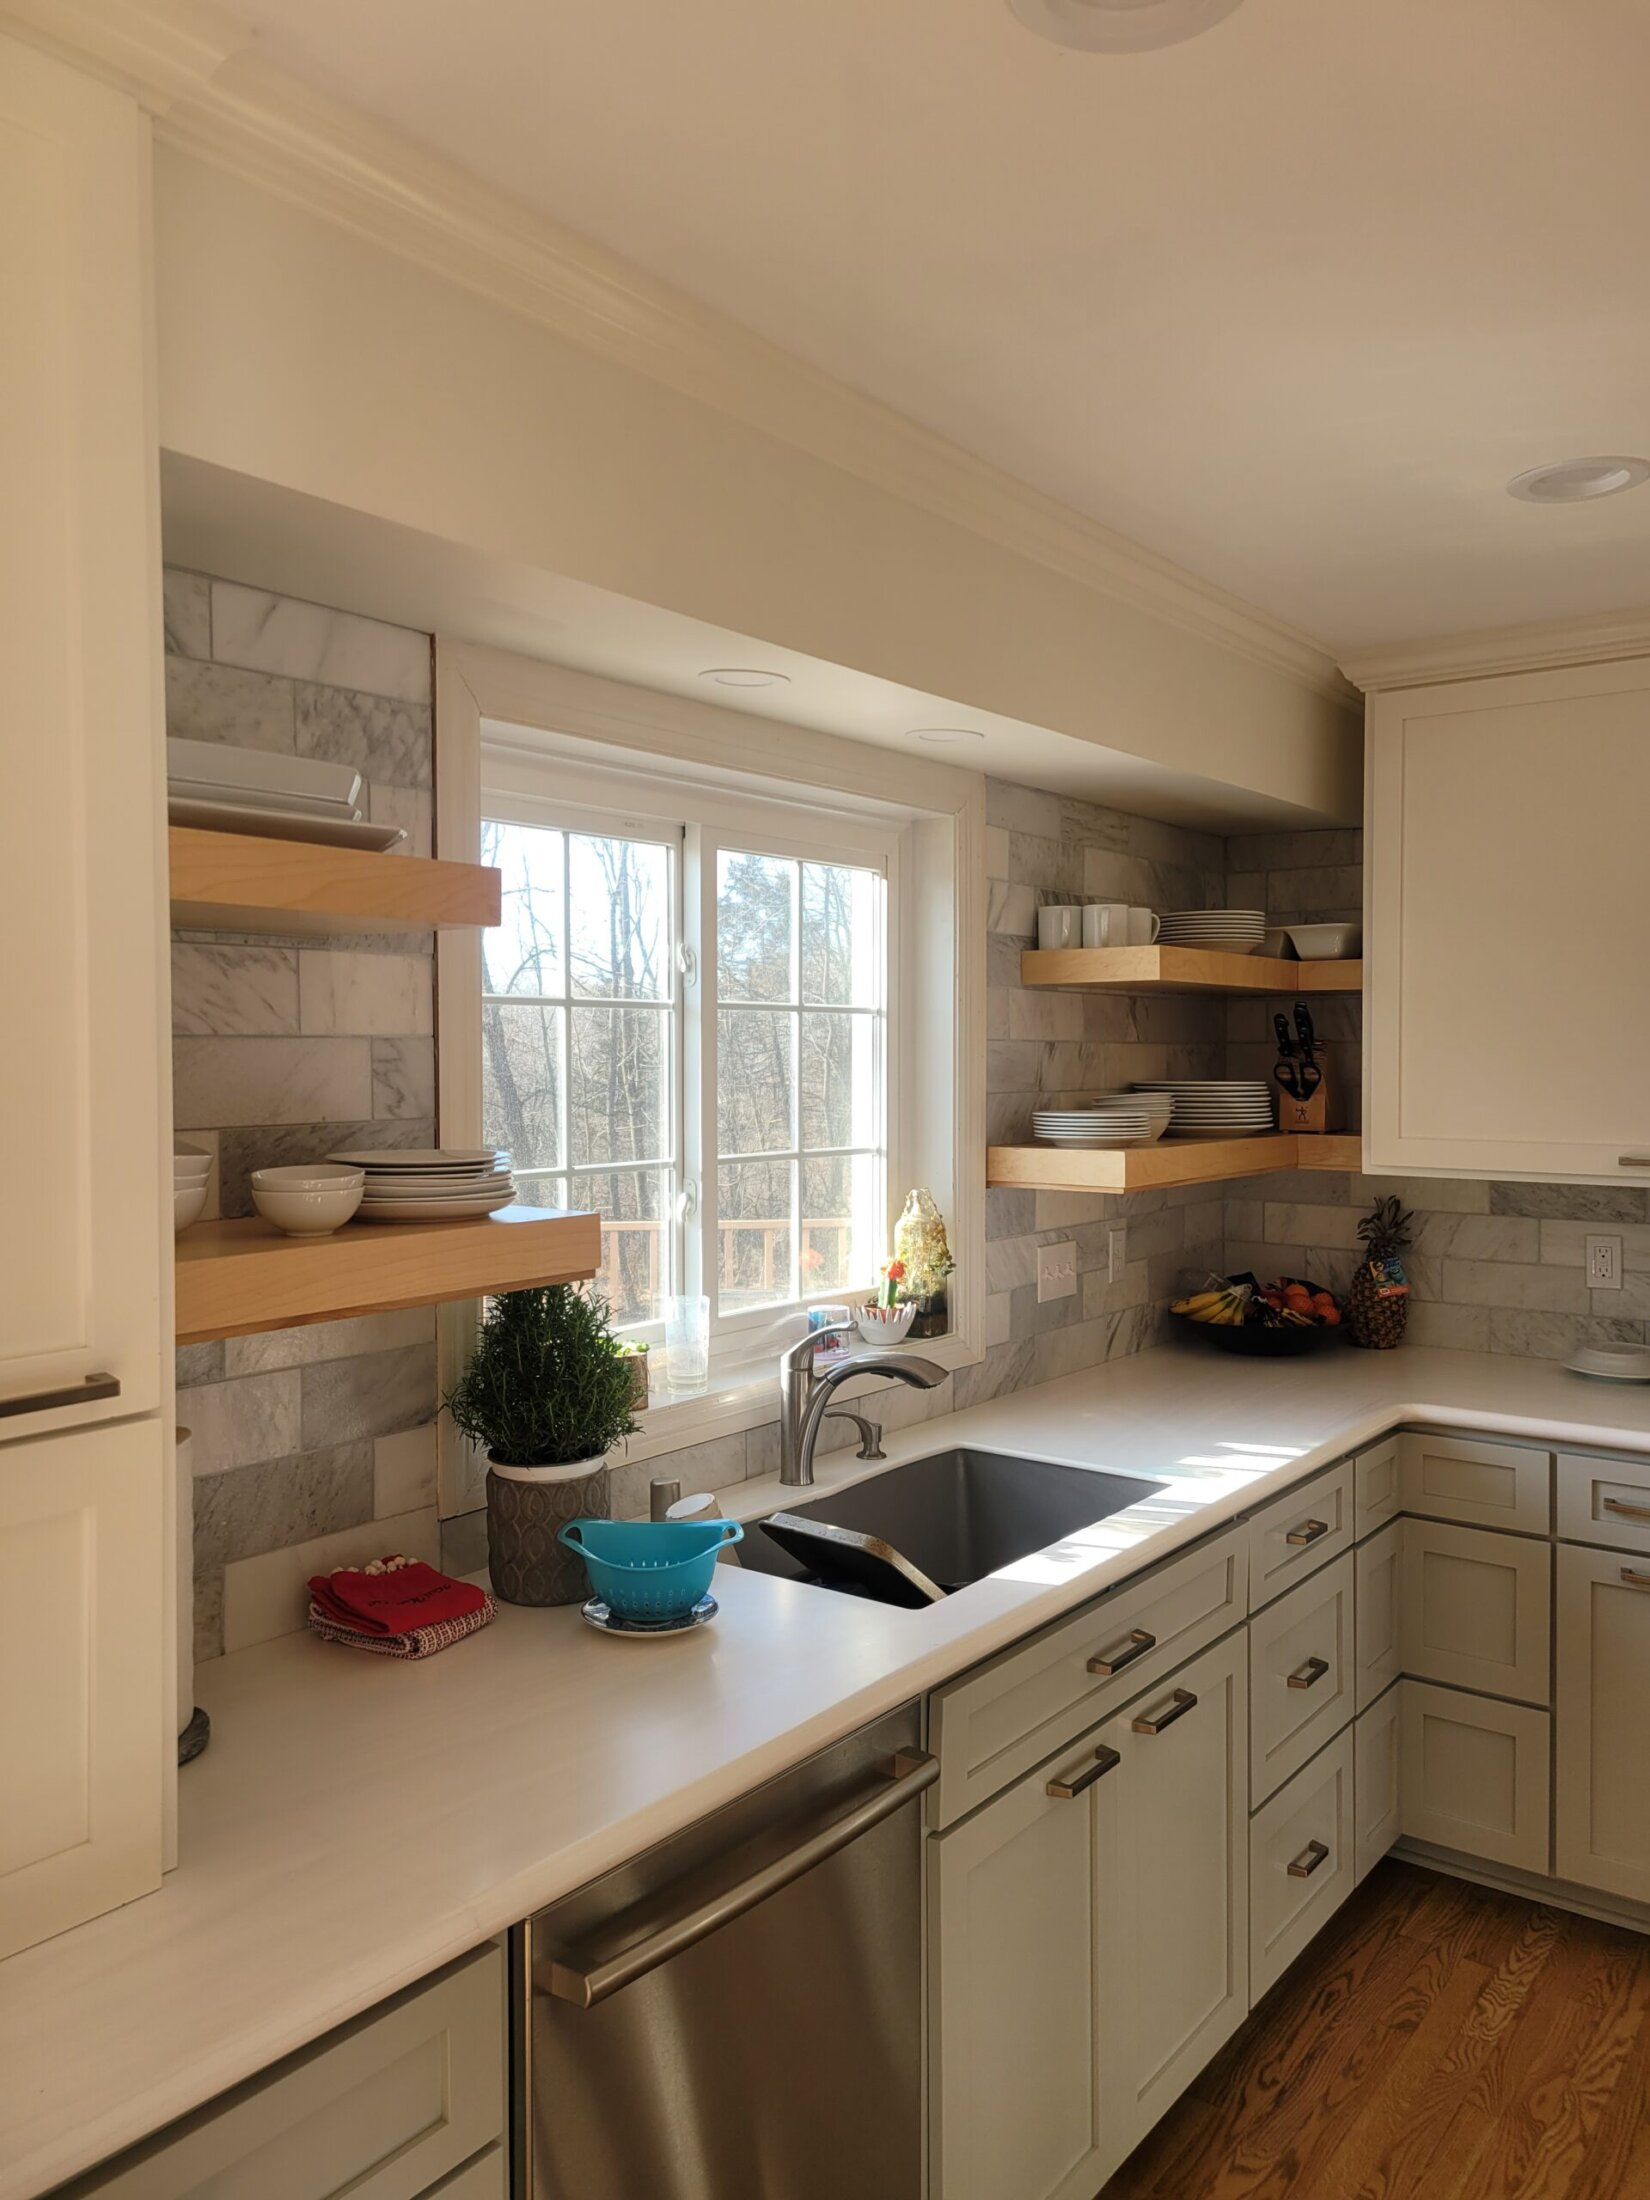 Custom Maple Open Shelves and Cabinets